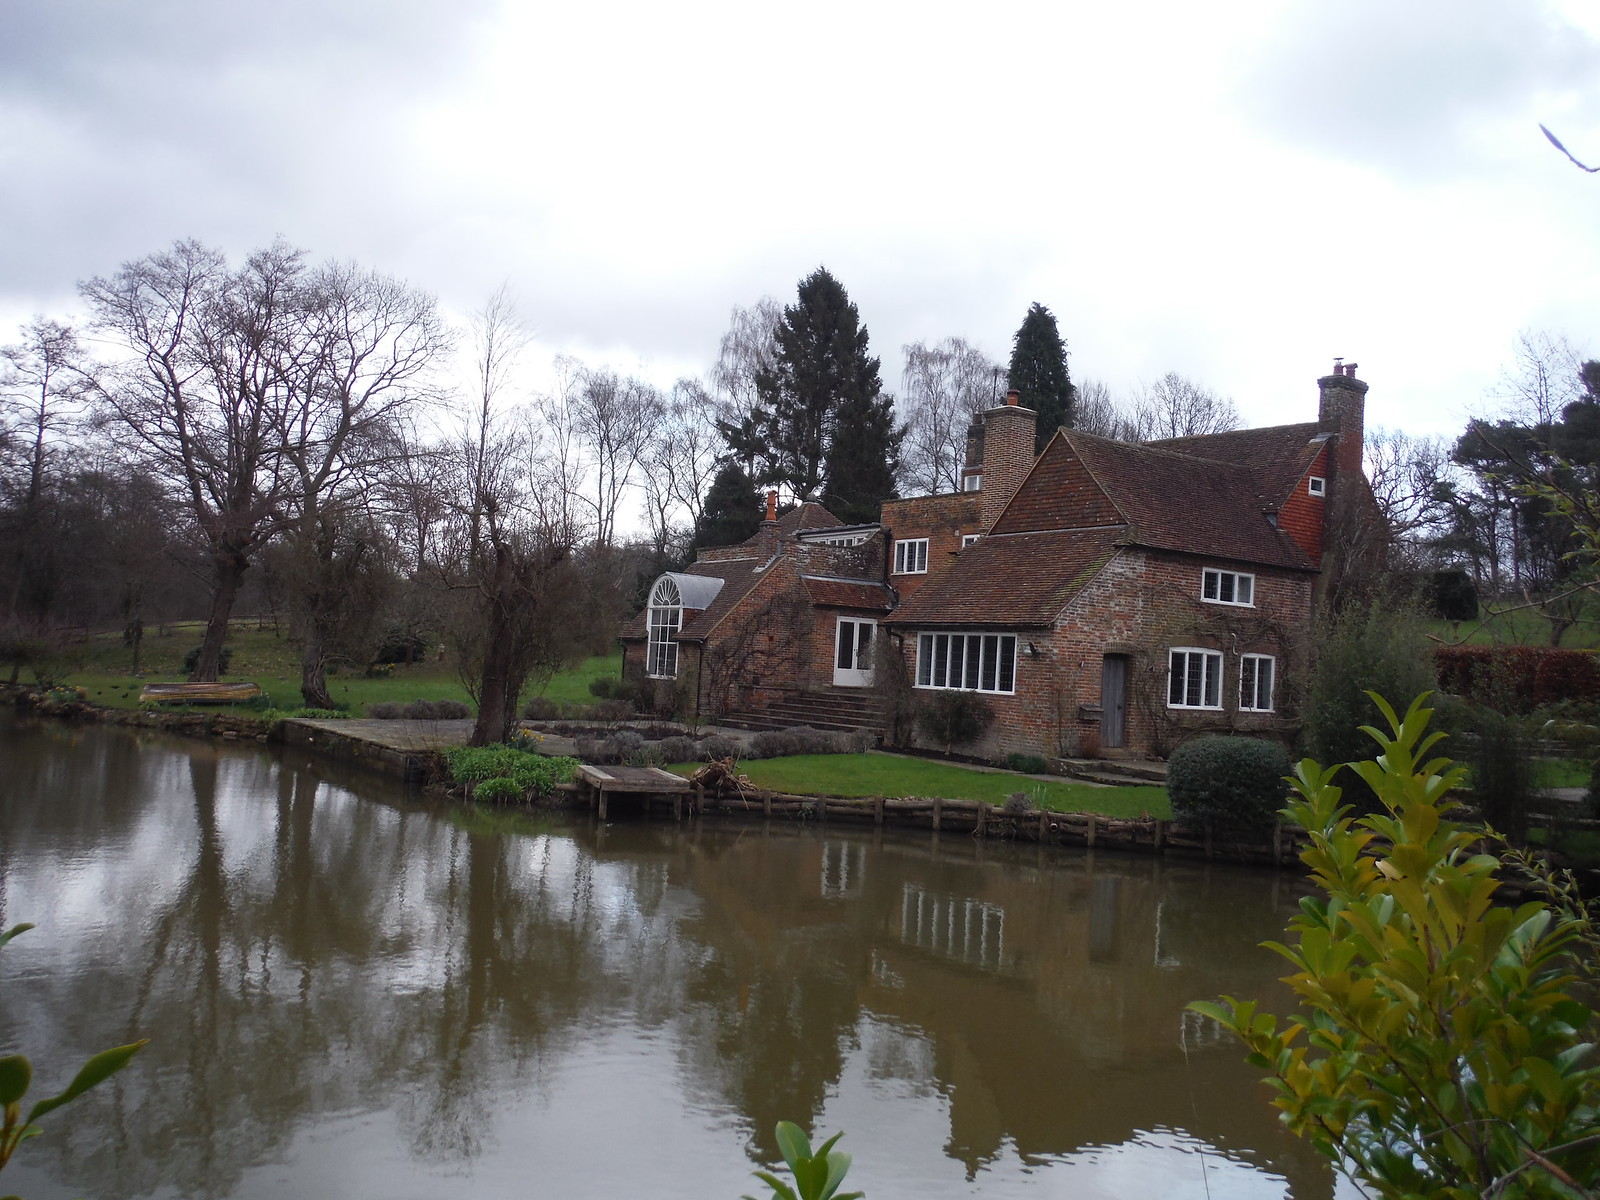 Tickerage Mill, Vivien Leigh's last abode SWC Walk 262 Uckfield to Buxted